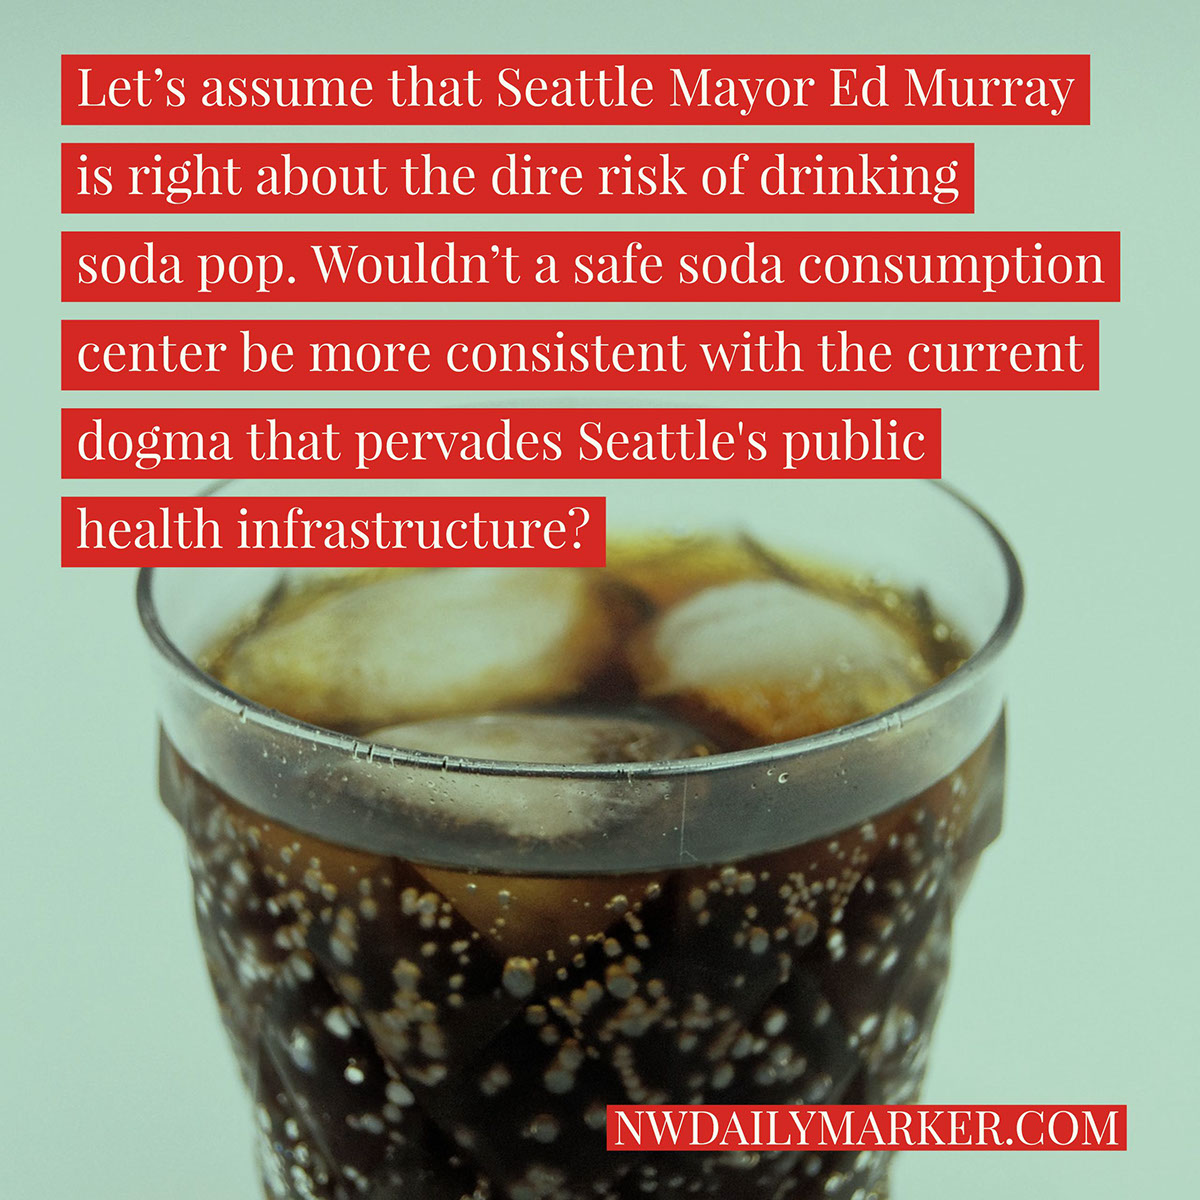 Let's assume that Seattle Mayor Ed Murray is right about the dire risk of drinking soda pop. Wouldn't a safe soda consumption center be more consistent with the current dogma that pervades Seattle's public health infrastructure?